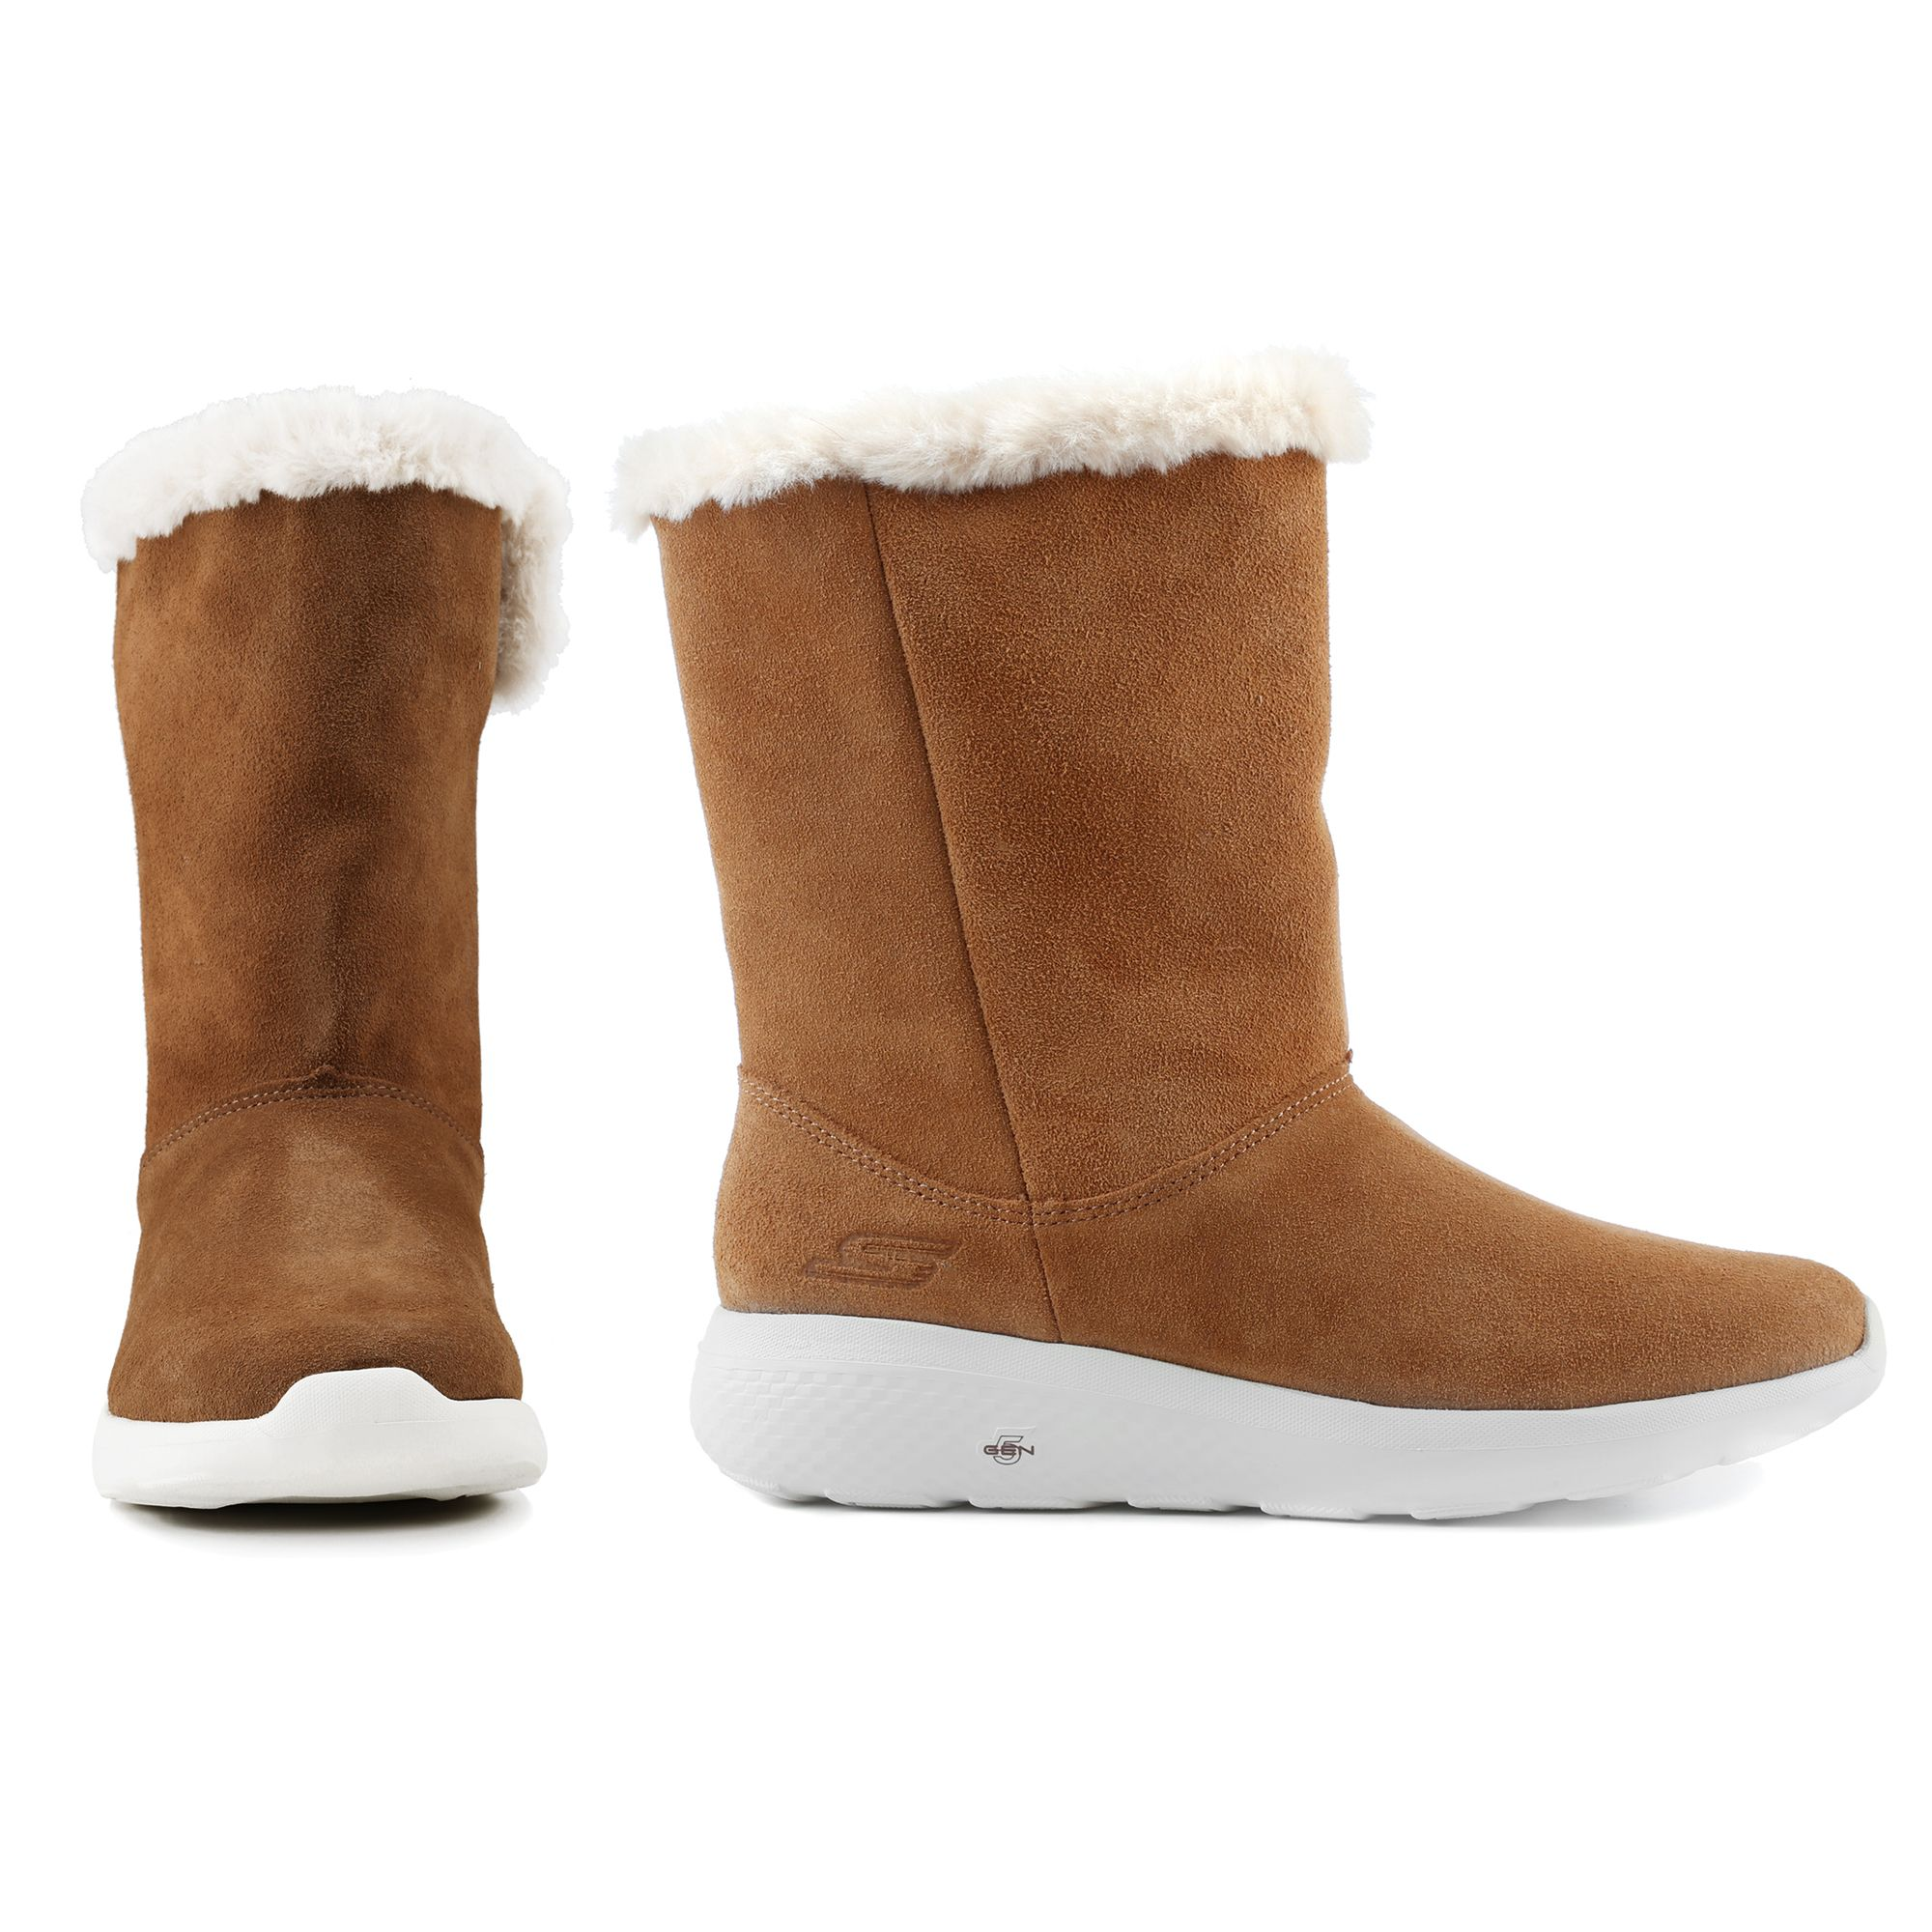 the latest 6a963 6c6f3 Qvc ara schuhe outlet. Jetzt im Outlet: großer Sale für ...